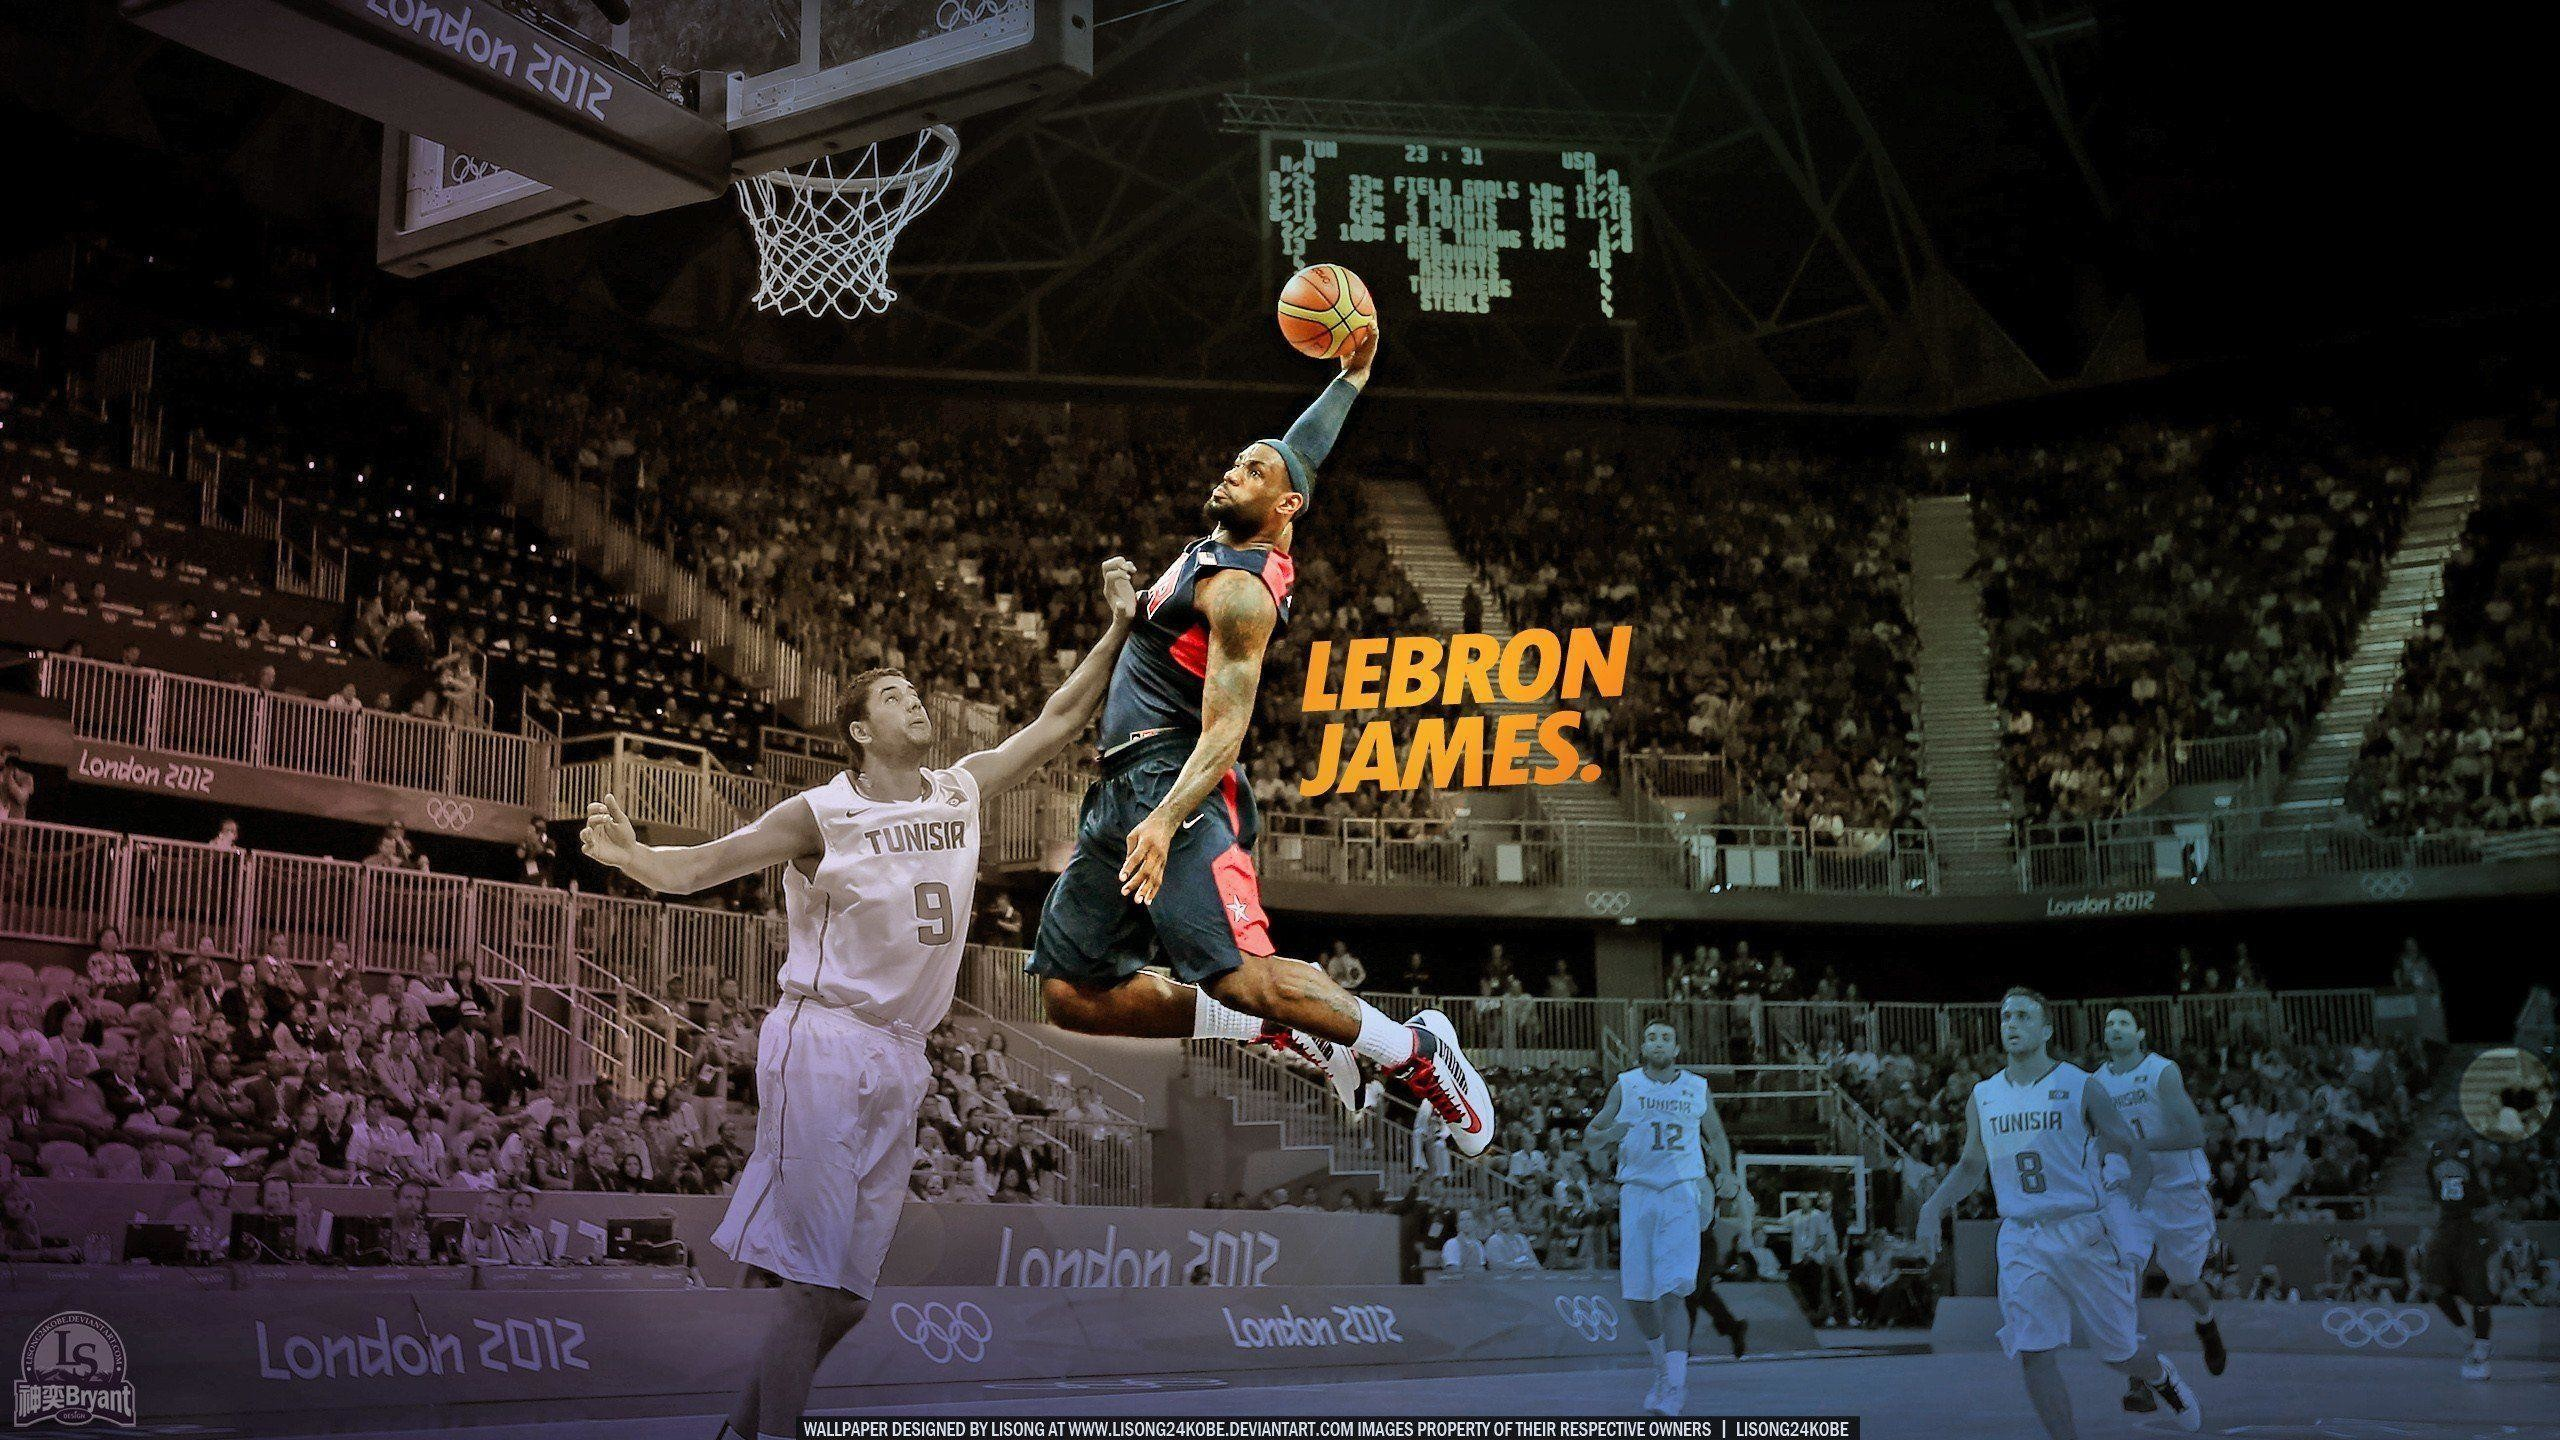 2560x1440 Slam dunk nba basketball lebron james championship miami heat .